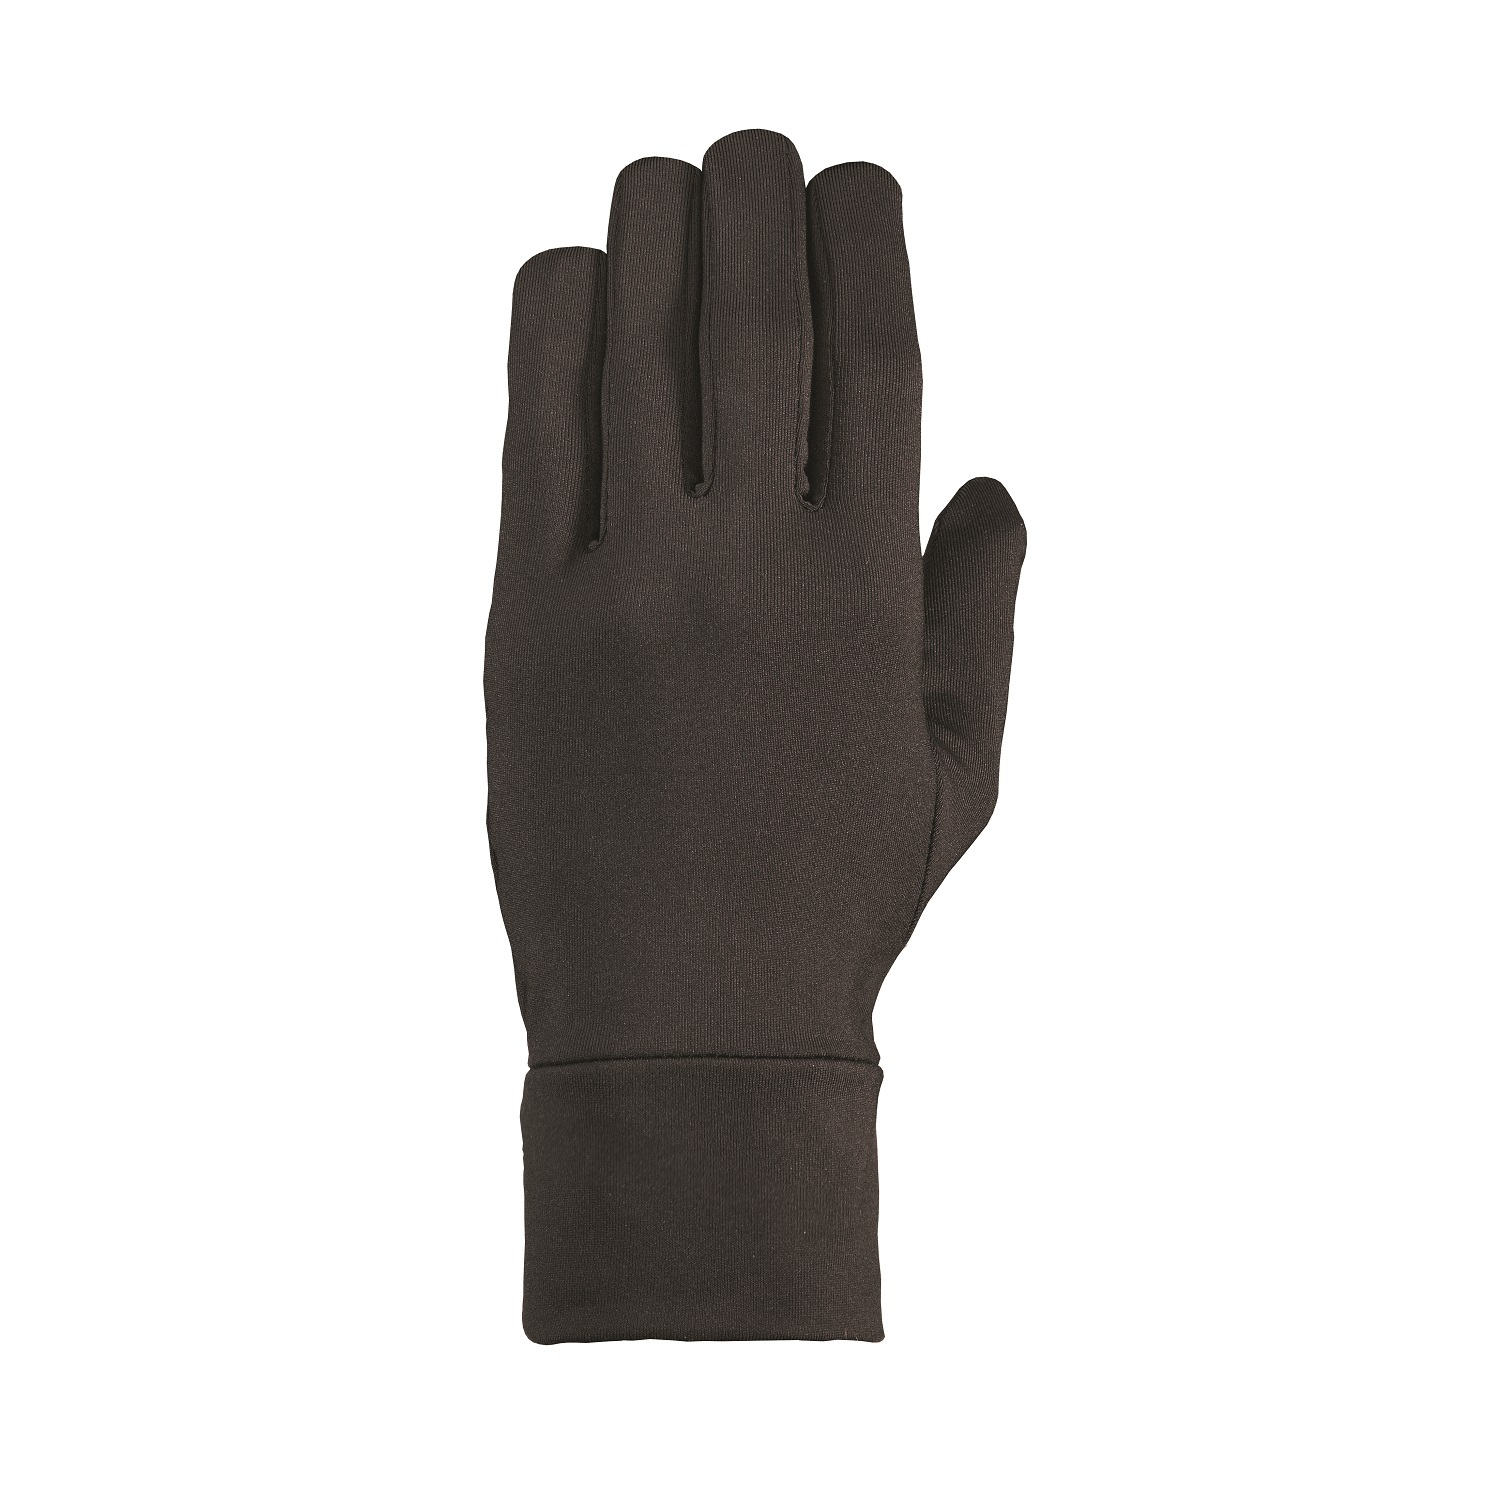 Seirus HWS Heatwave Glove Liner - Small/Medium